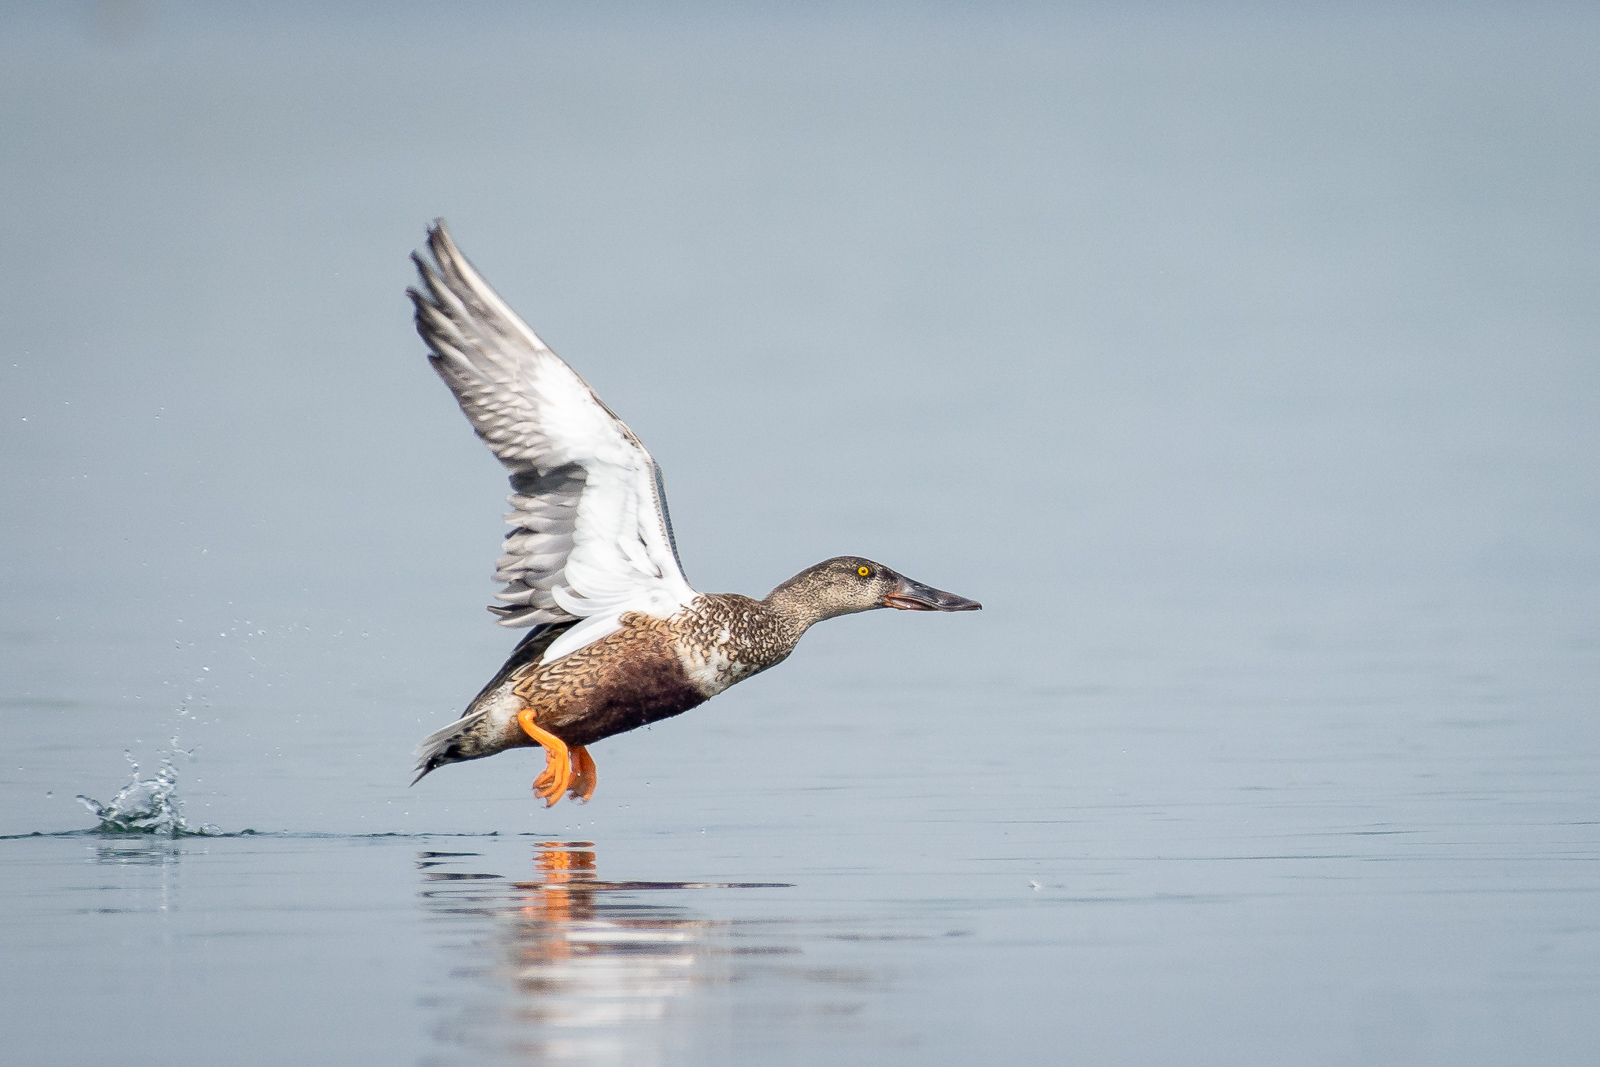 Image: Shoveler bird captured at f/5.6, sharpness at this aperture is great